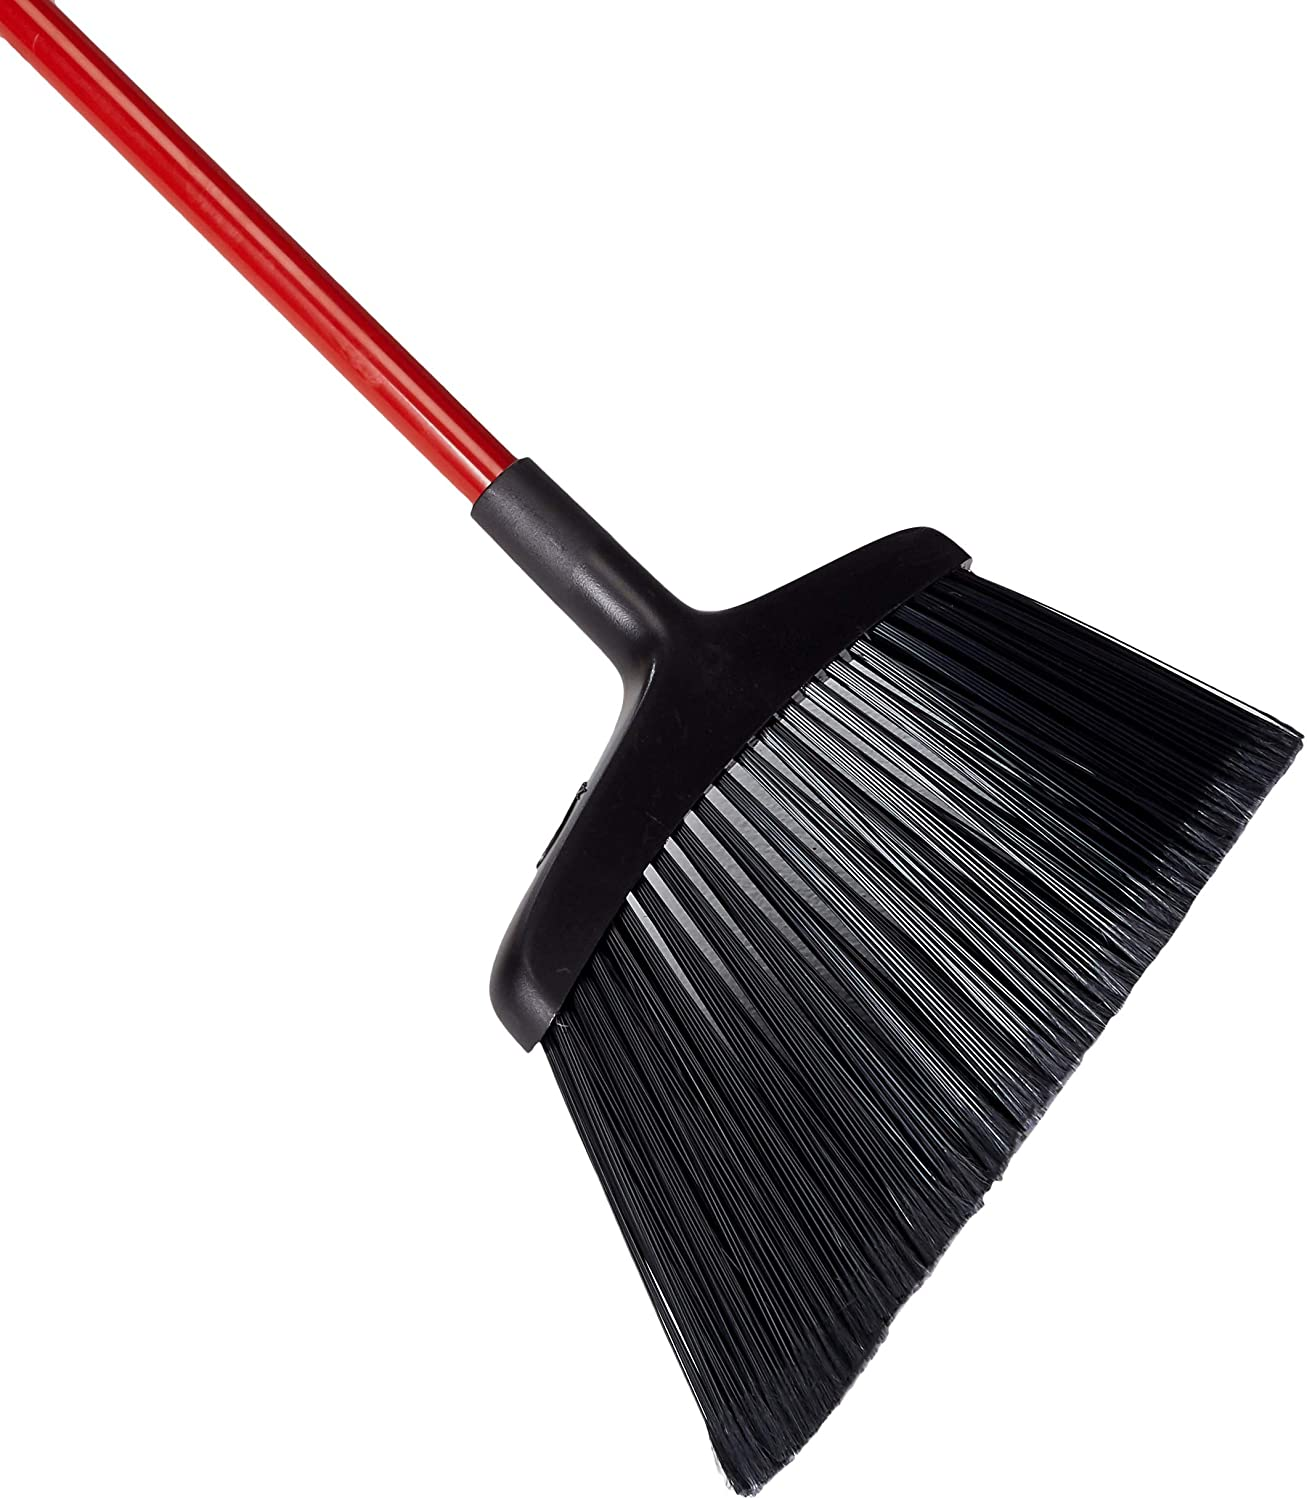 Libman 13in. Commercial Angle Broom, Model# 994